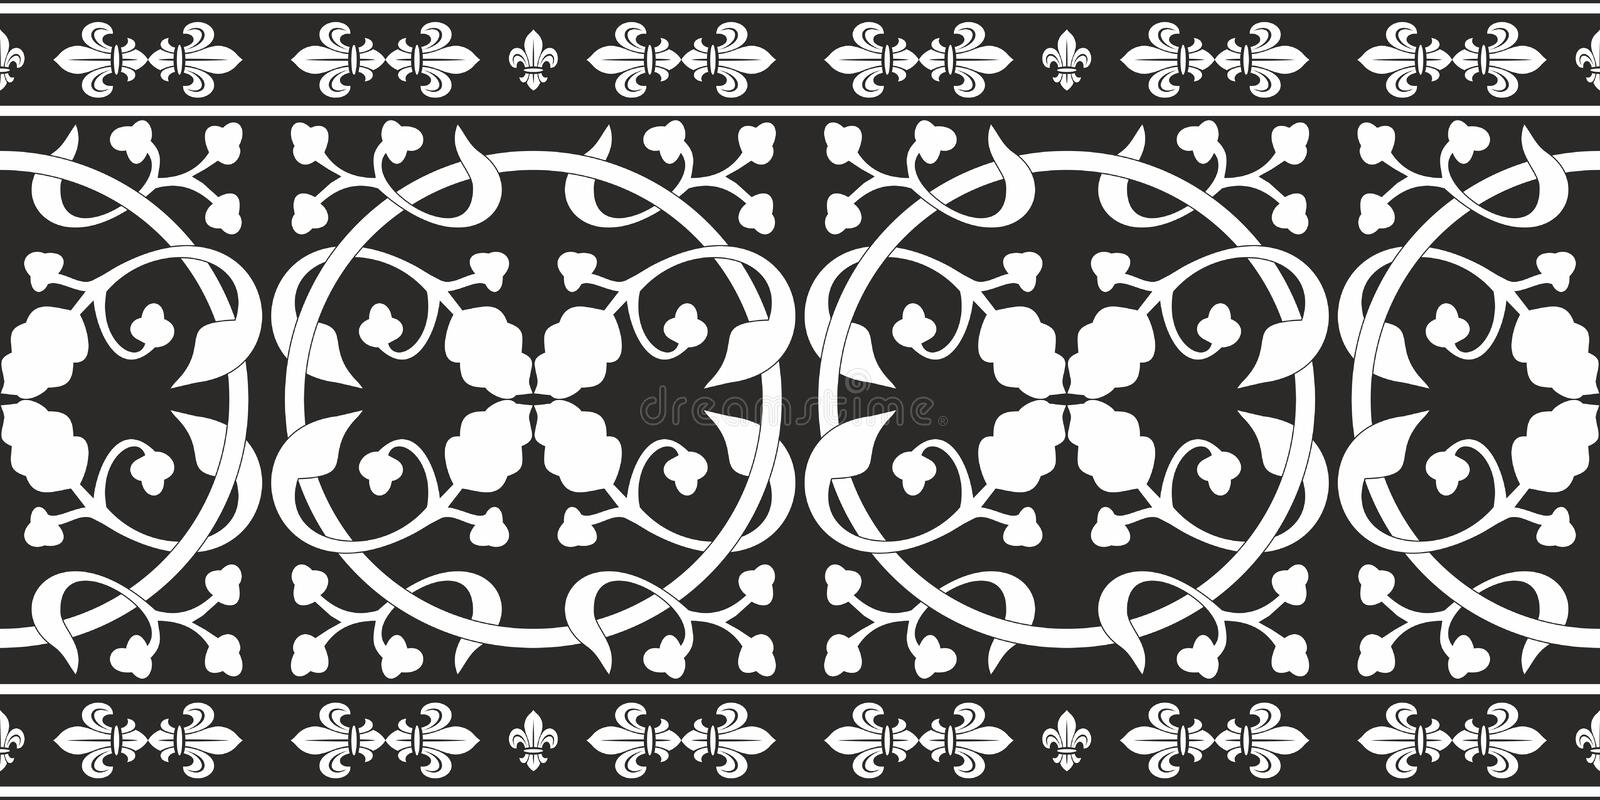 Seamless black-and-white gothic floral pattern stock illustration